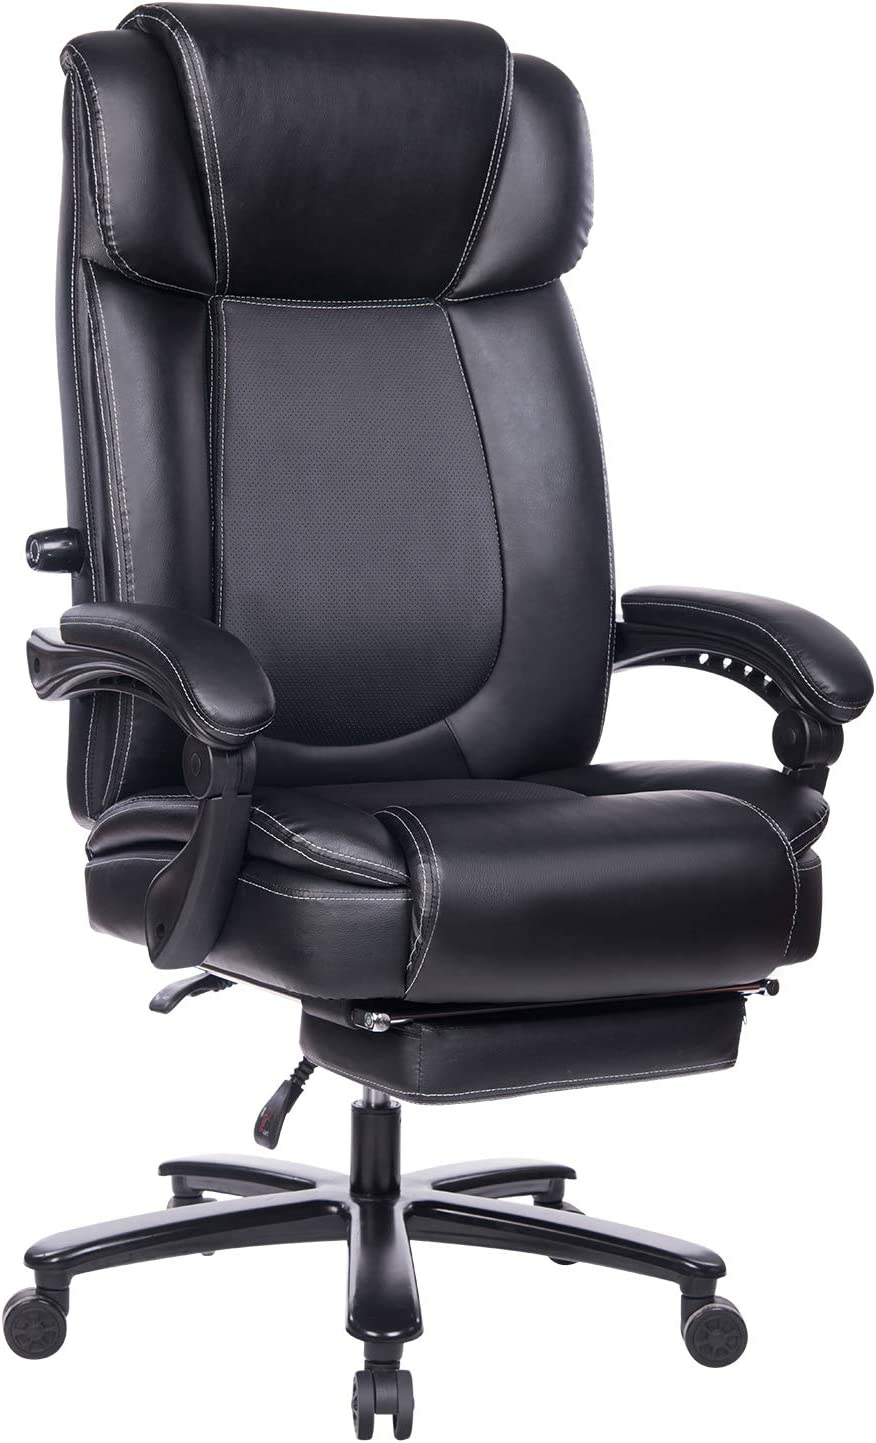 REFICCER Big and Tall Bonded Leather Office Chair - High Back Metal Base Executive Computer Desk Chair, Adjustable Built-in Lumbar Support with Footrest - Black